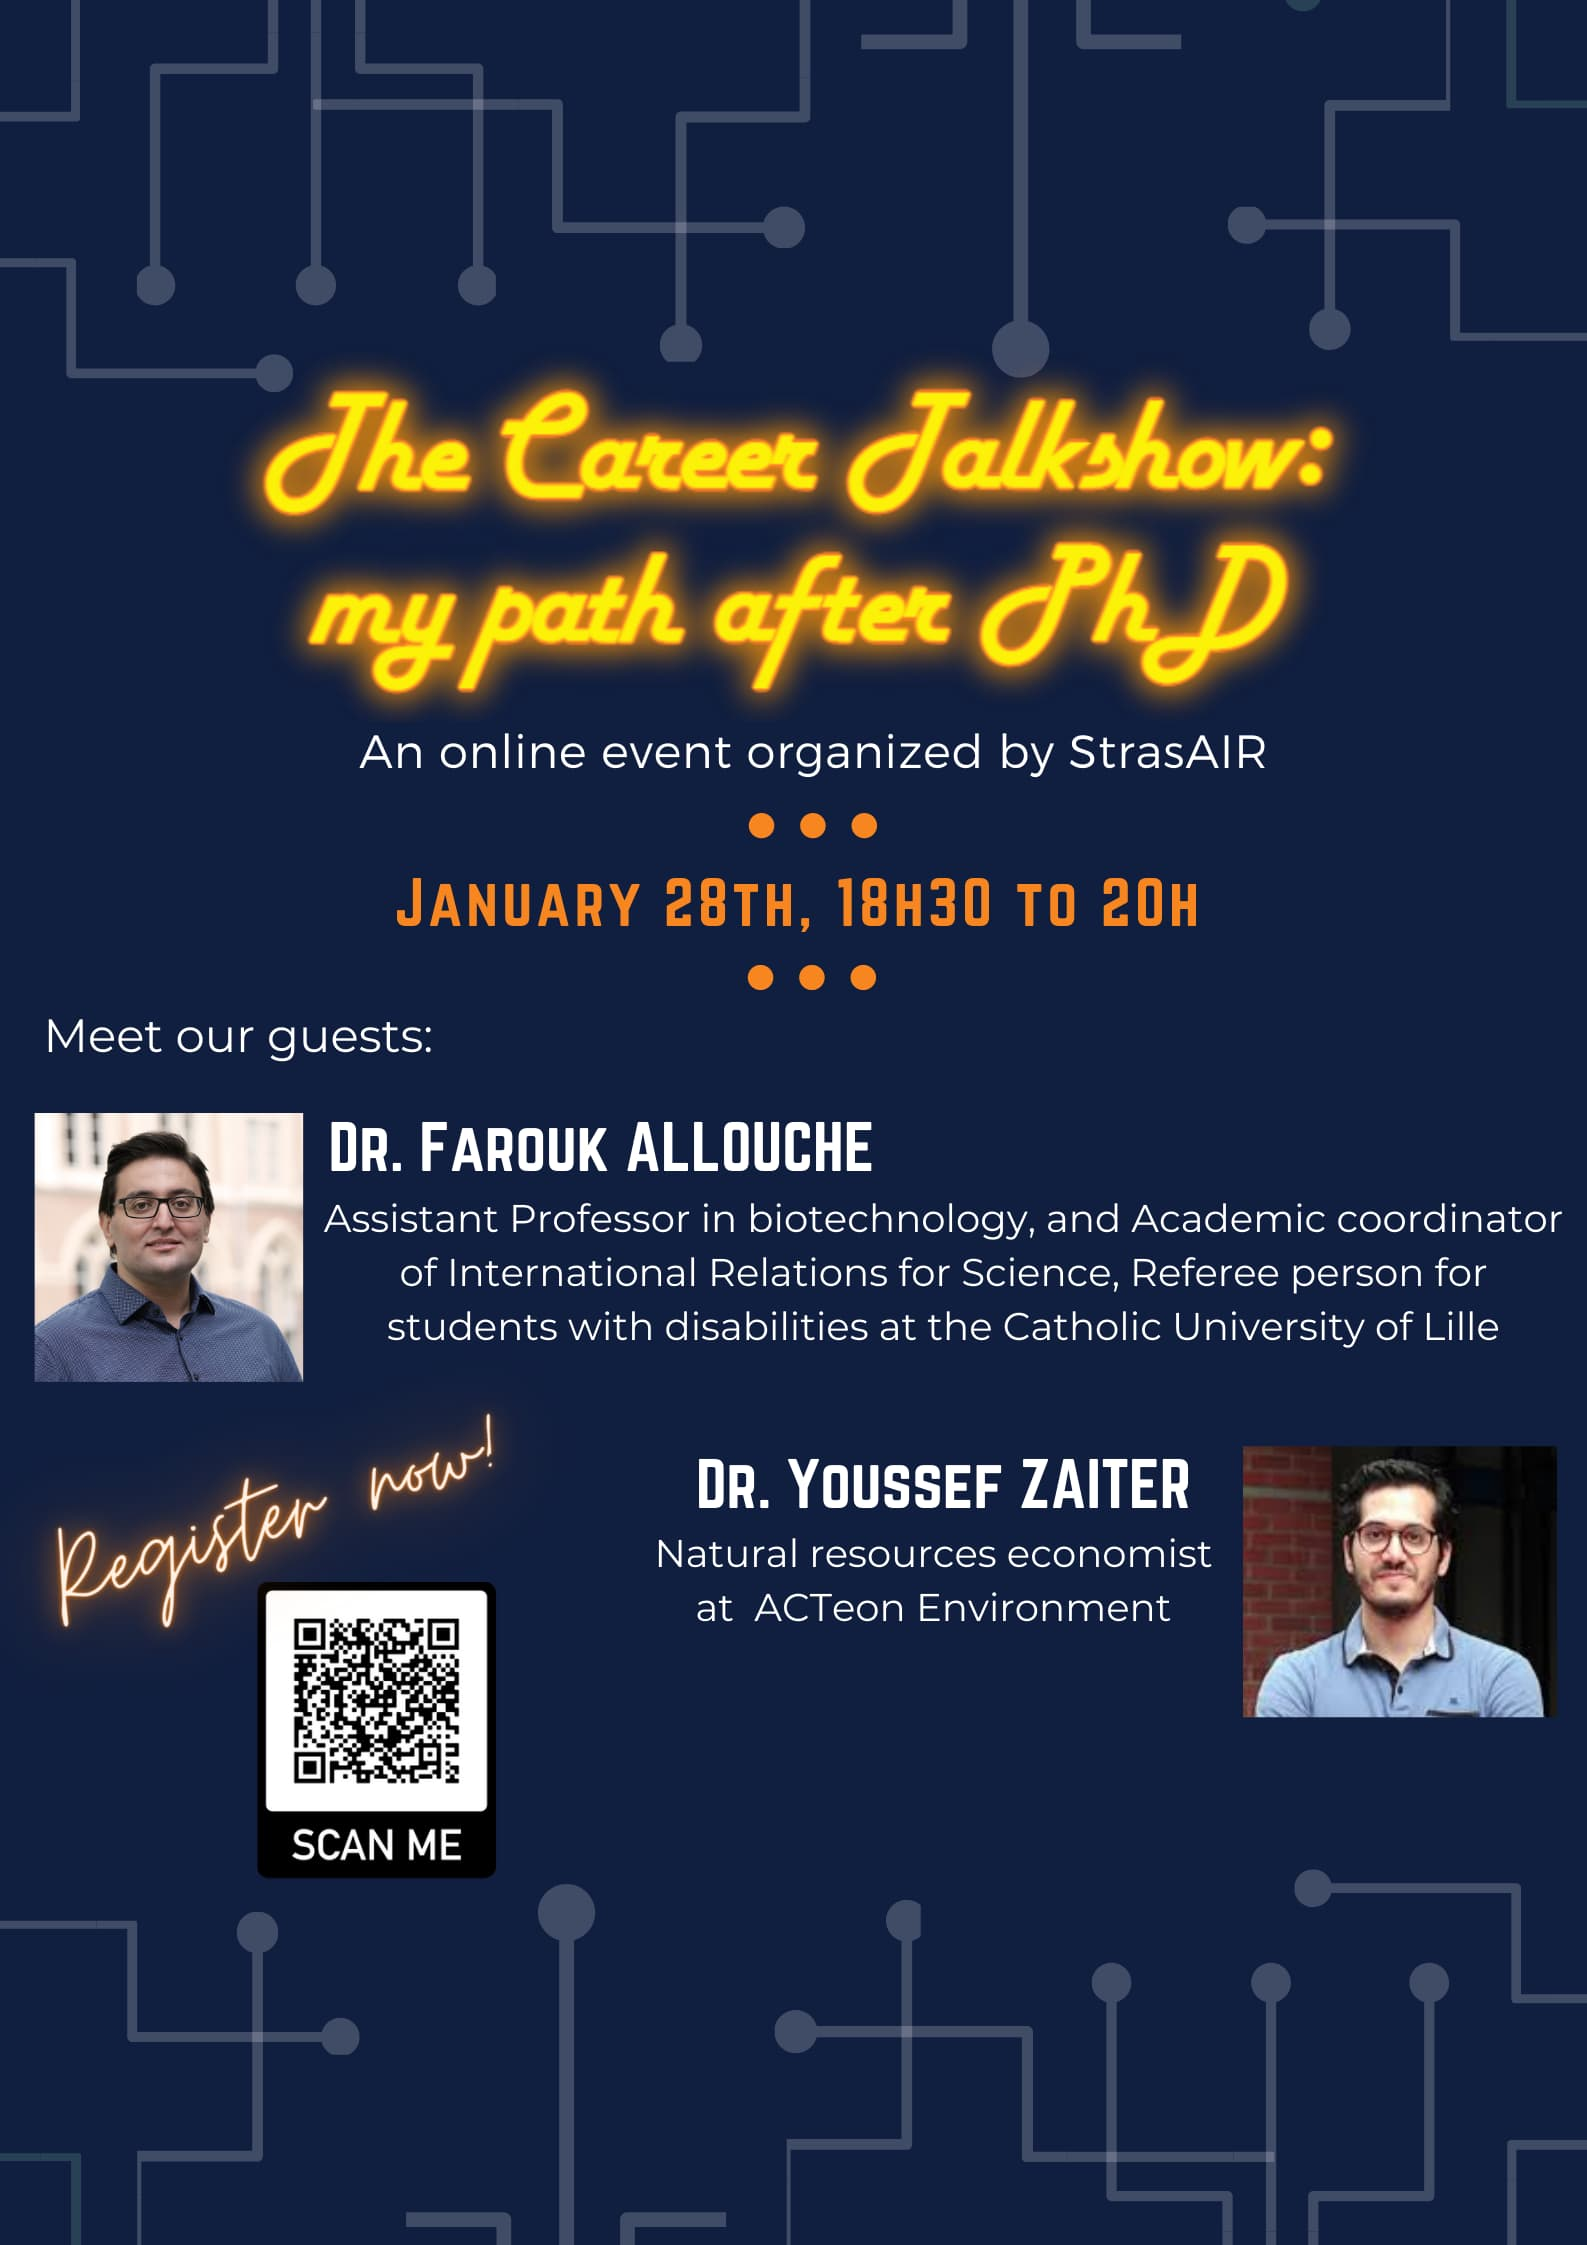 The Career Talkshow: My path after PhD